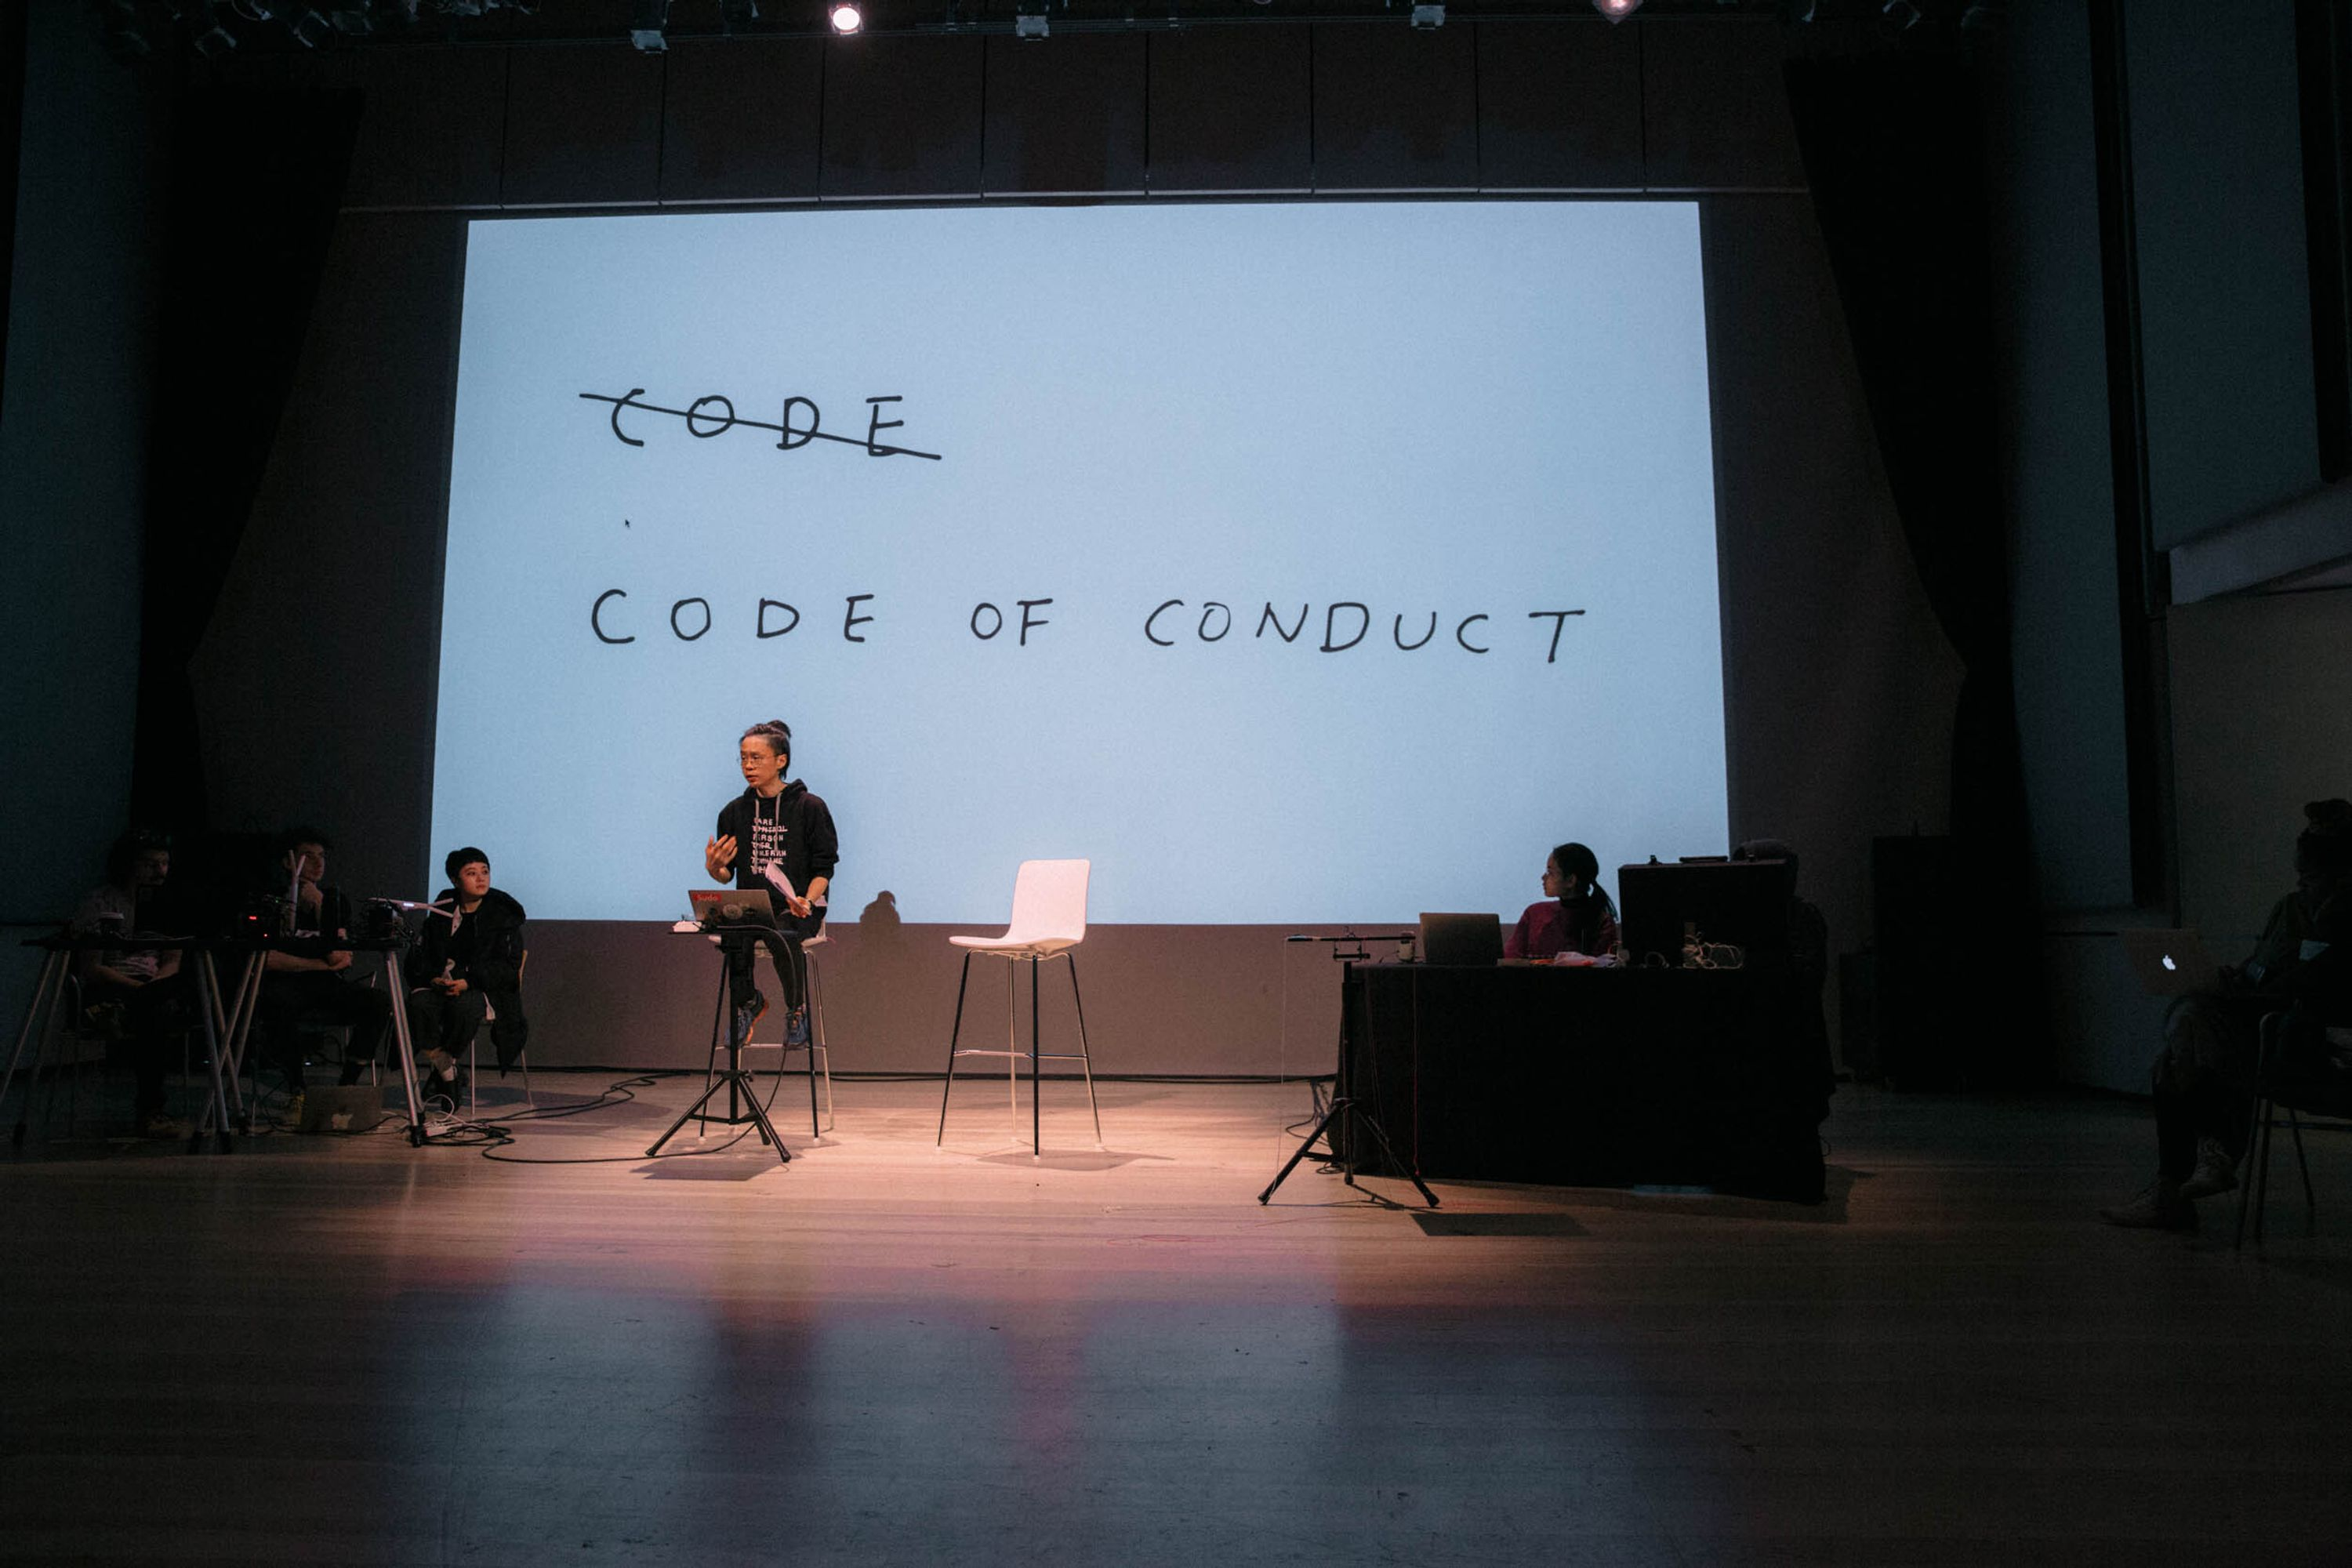 """Taeyoon is spotlit and wearing a black sweatshirt, sitting on a chair that's on a stage. Behind him, a large screen shows a handwritten images where the word """"code"""" is crossed out, and """"code of conduct"""" is written below."""